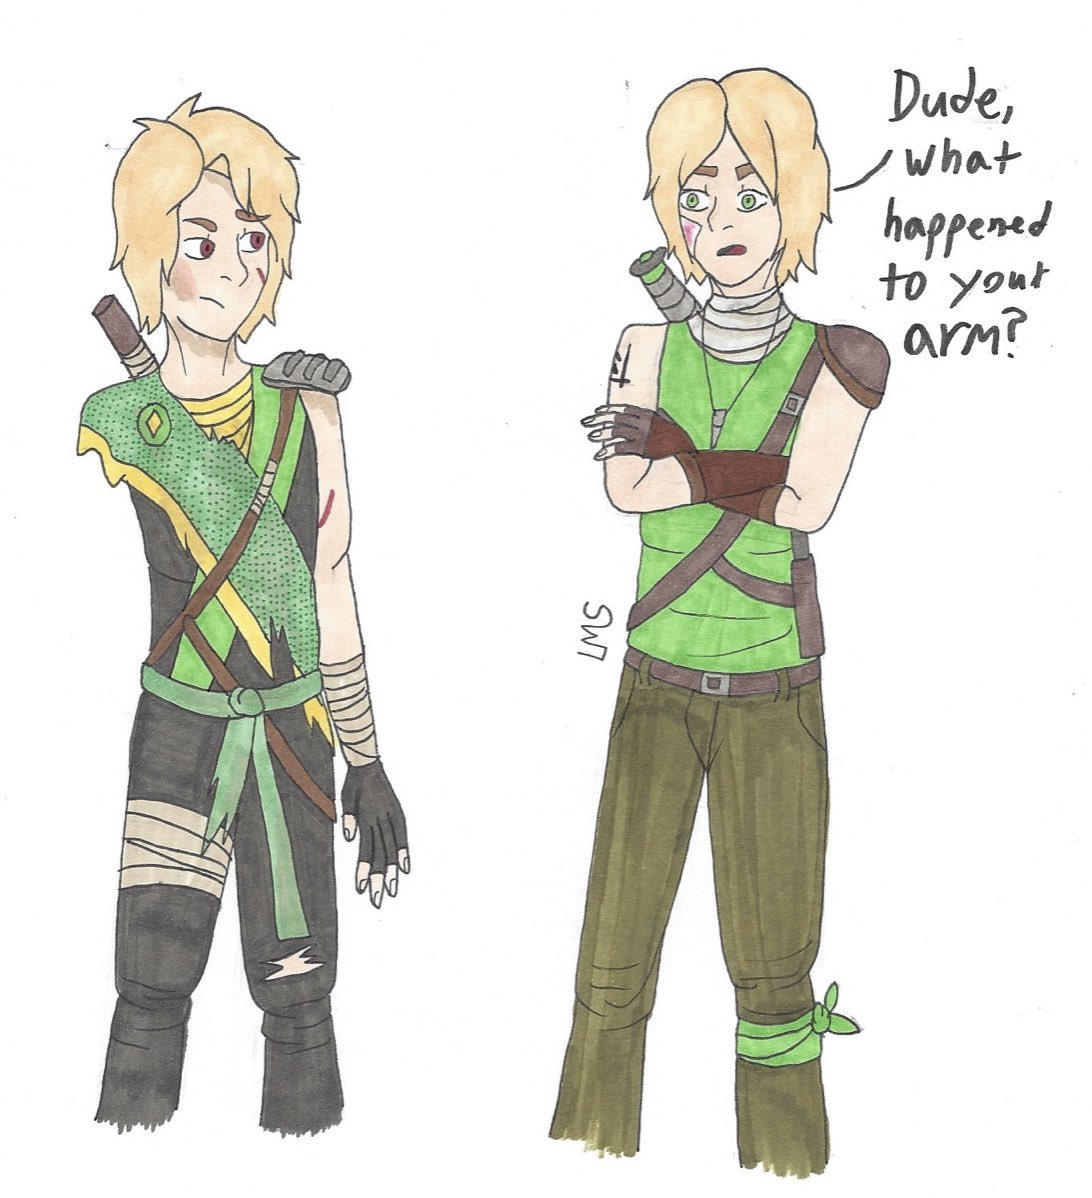 So turns out I'm not the only one with an Apocalypse AU. There are actually a couple, but this is the first one I noticed. So I thought it'd be fun to draw the Lloyds side by side! The one on my right is my version. The one on the left is by Meeyahmaya (Tumblr) #Ninjago